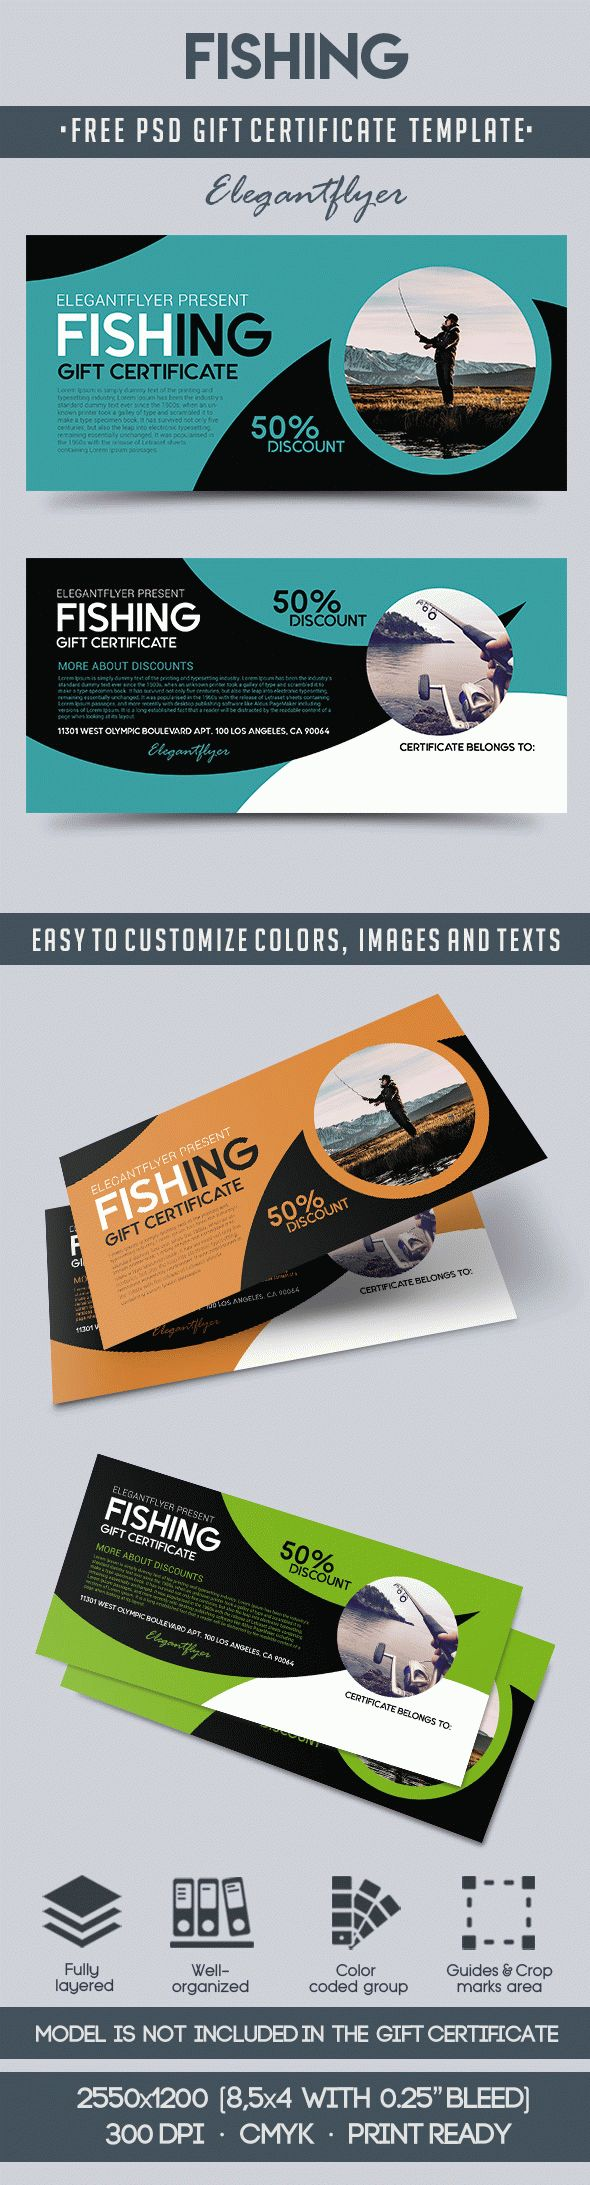 Fishing – Free Gift Certificate PSD Template